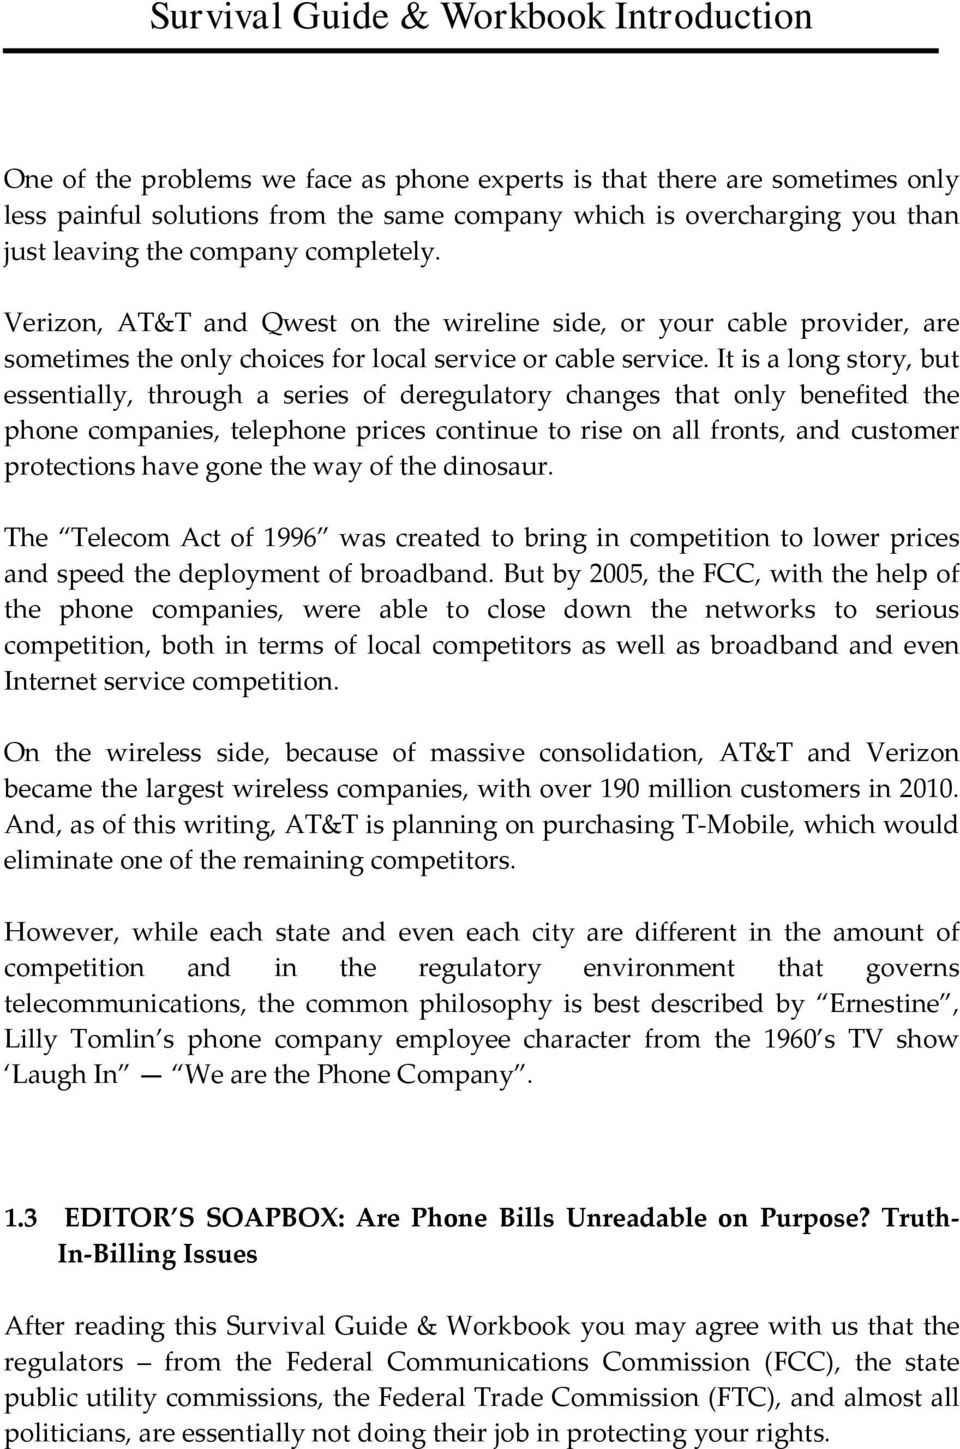 It is a long story, but essentially, through a series of deregulatory changes that only benefited the phone companies, telephone prices continue to rise on all fronts, and customer protections have